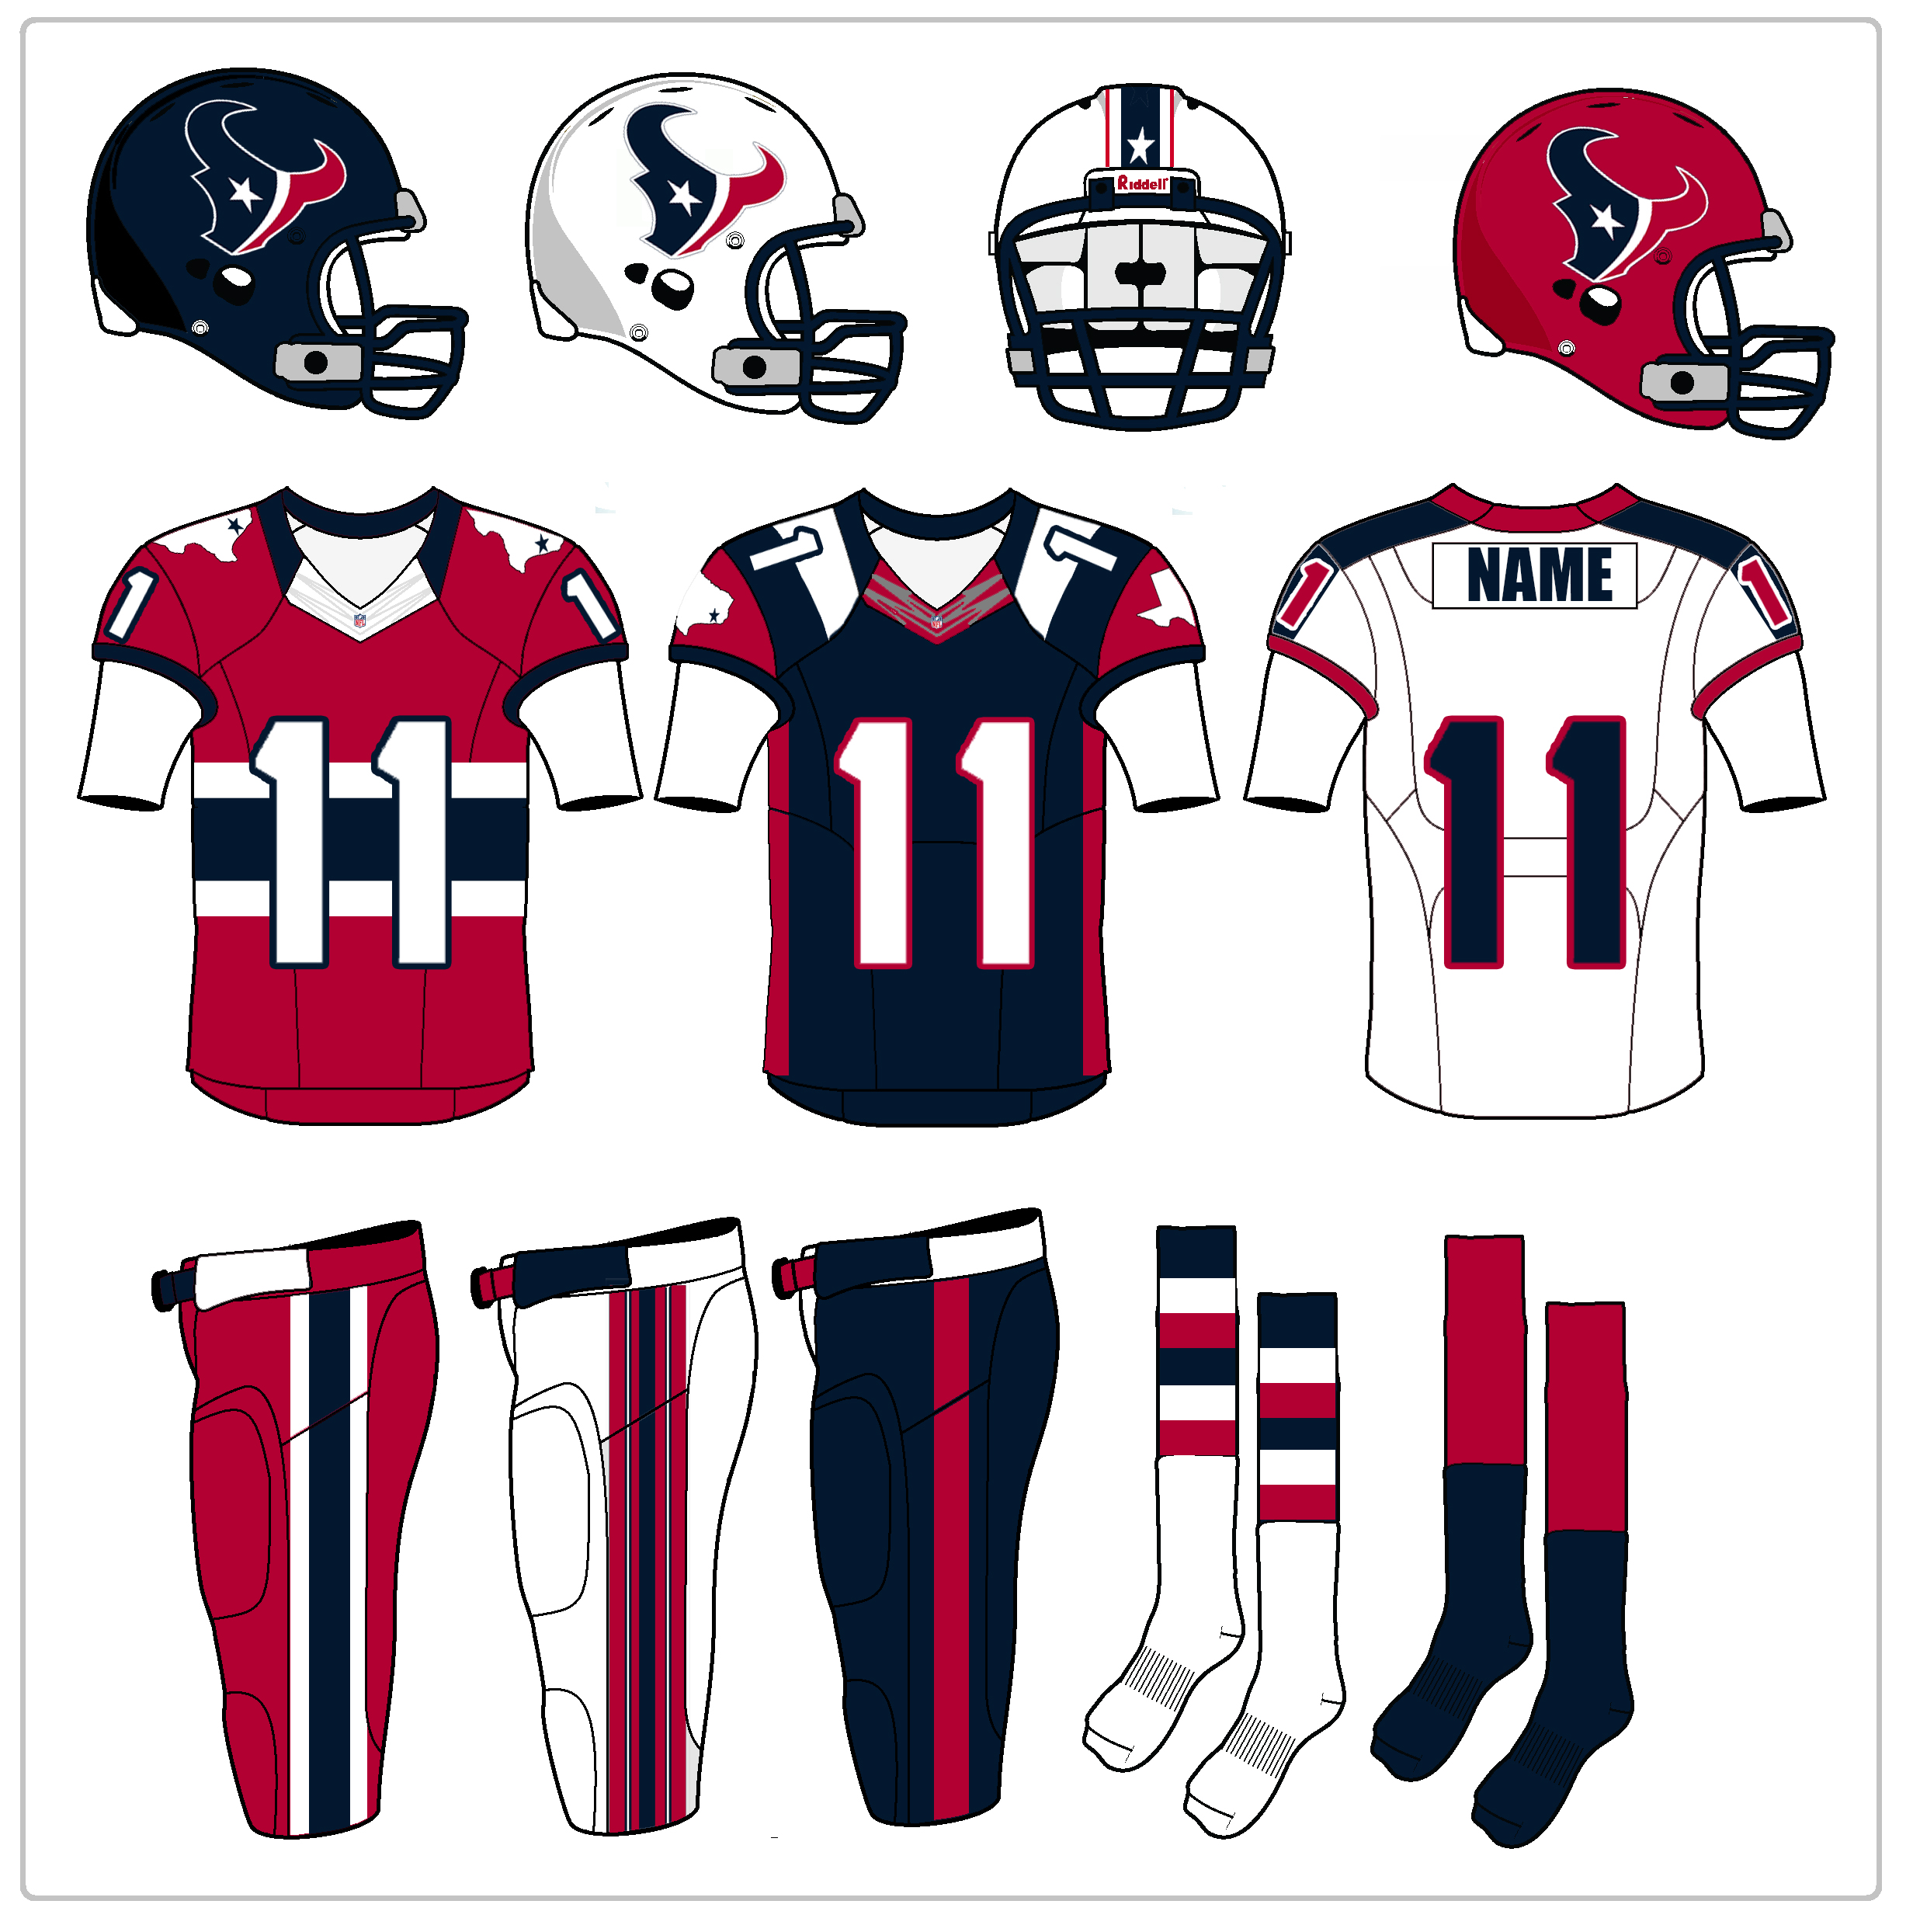 Crazy-Texans-Jerseys